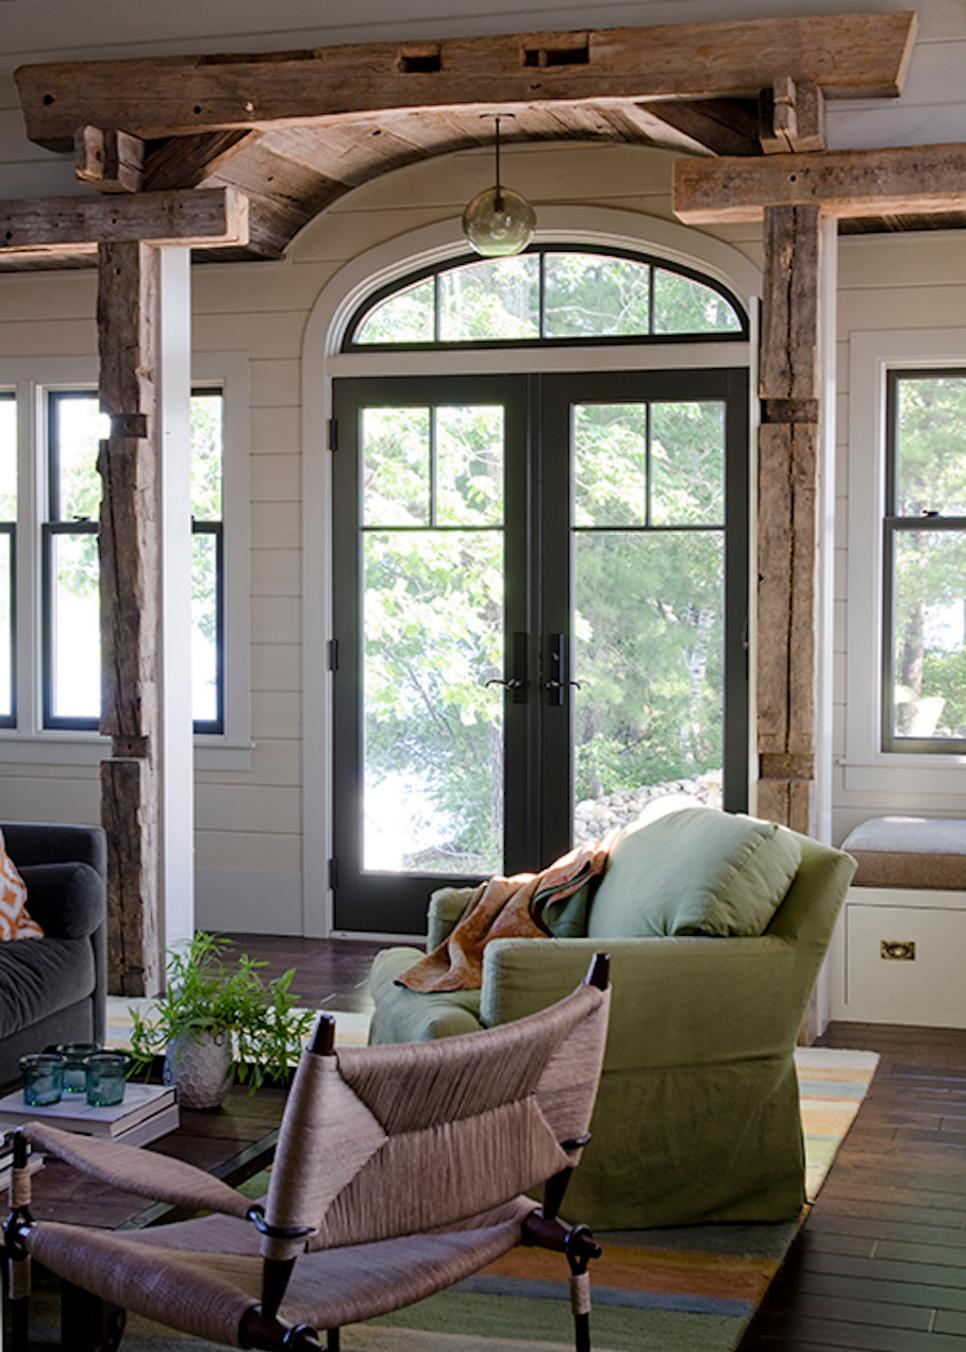 Cozy lakeside cabin with rustic features hgtv faces of for Crest home designs bedding